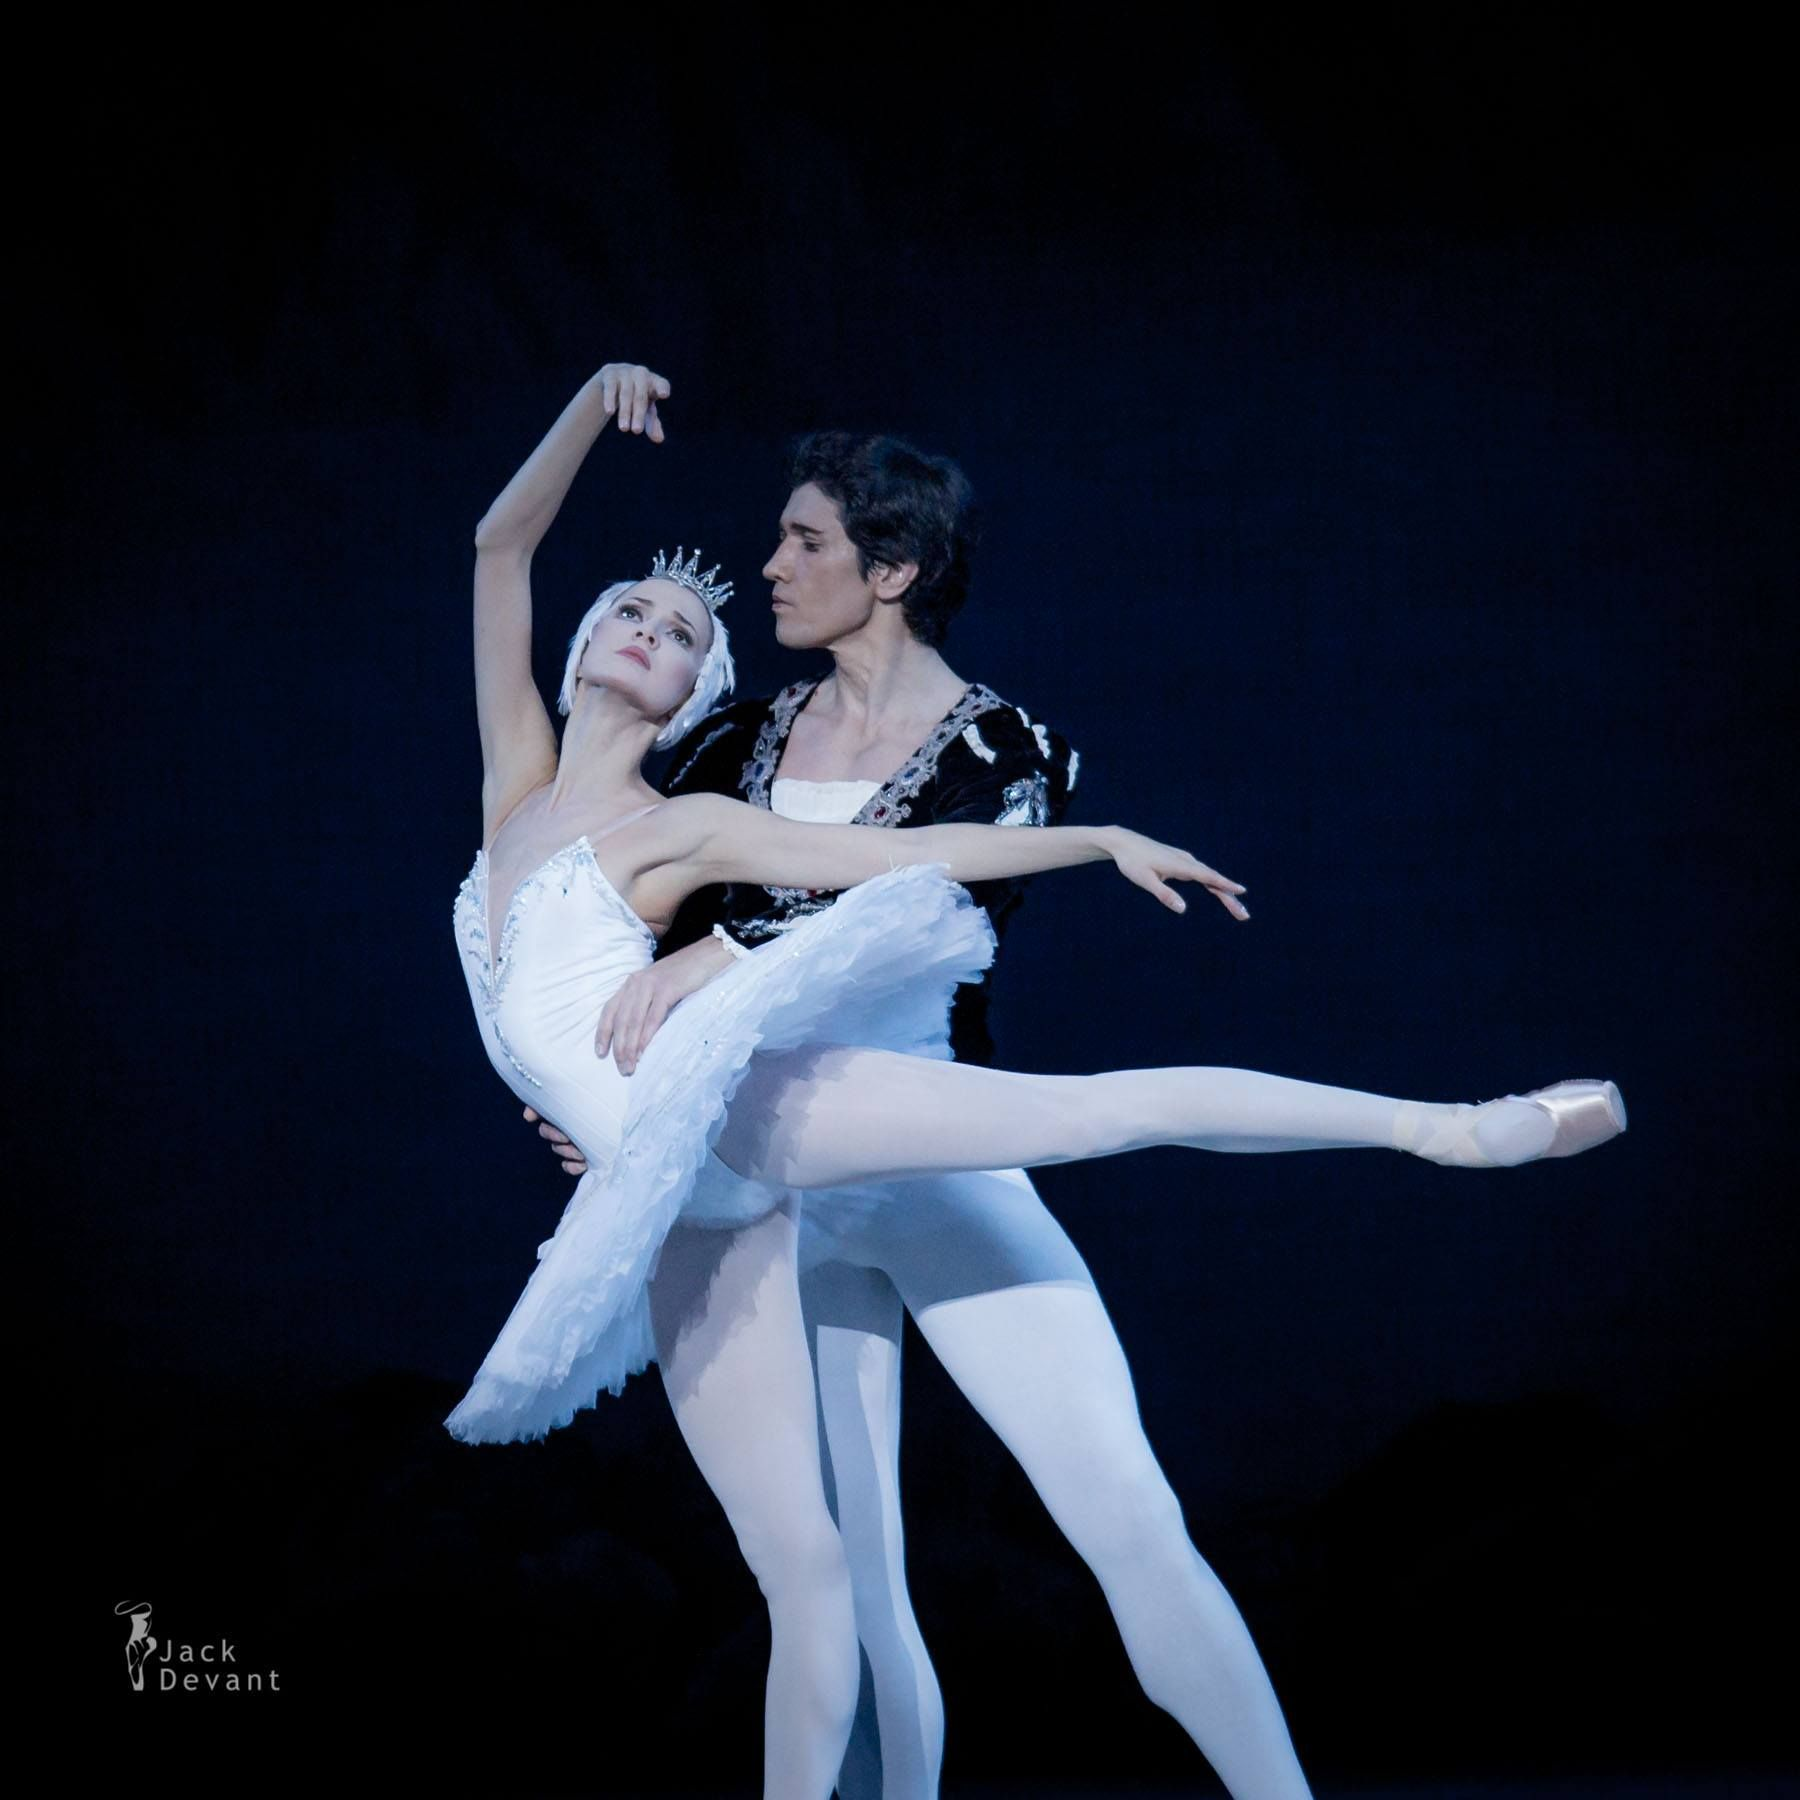 Alina Somova as Odette & Danila Korsuntsev as Prince Siegfried from 'Swan Lake' - Photo by Jack Devant